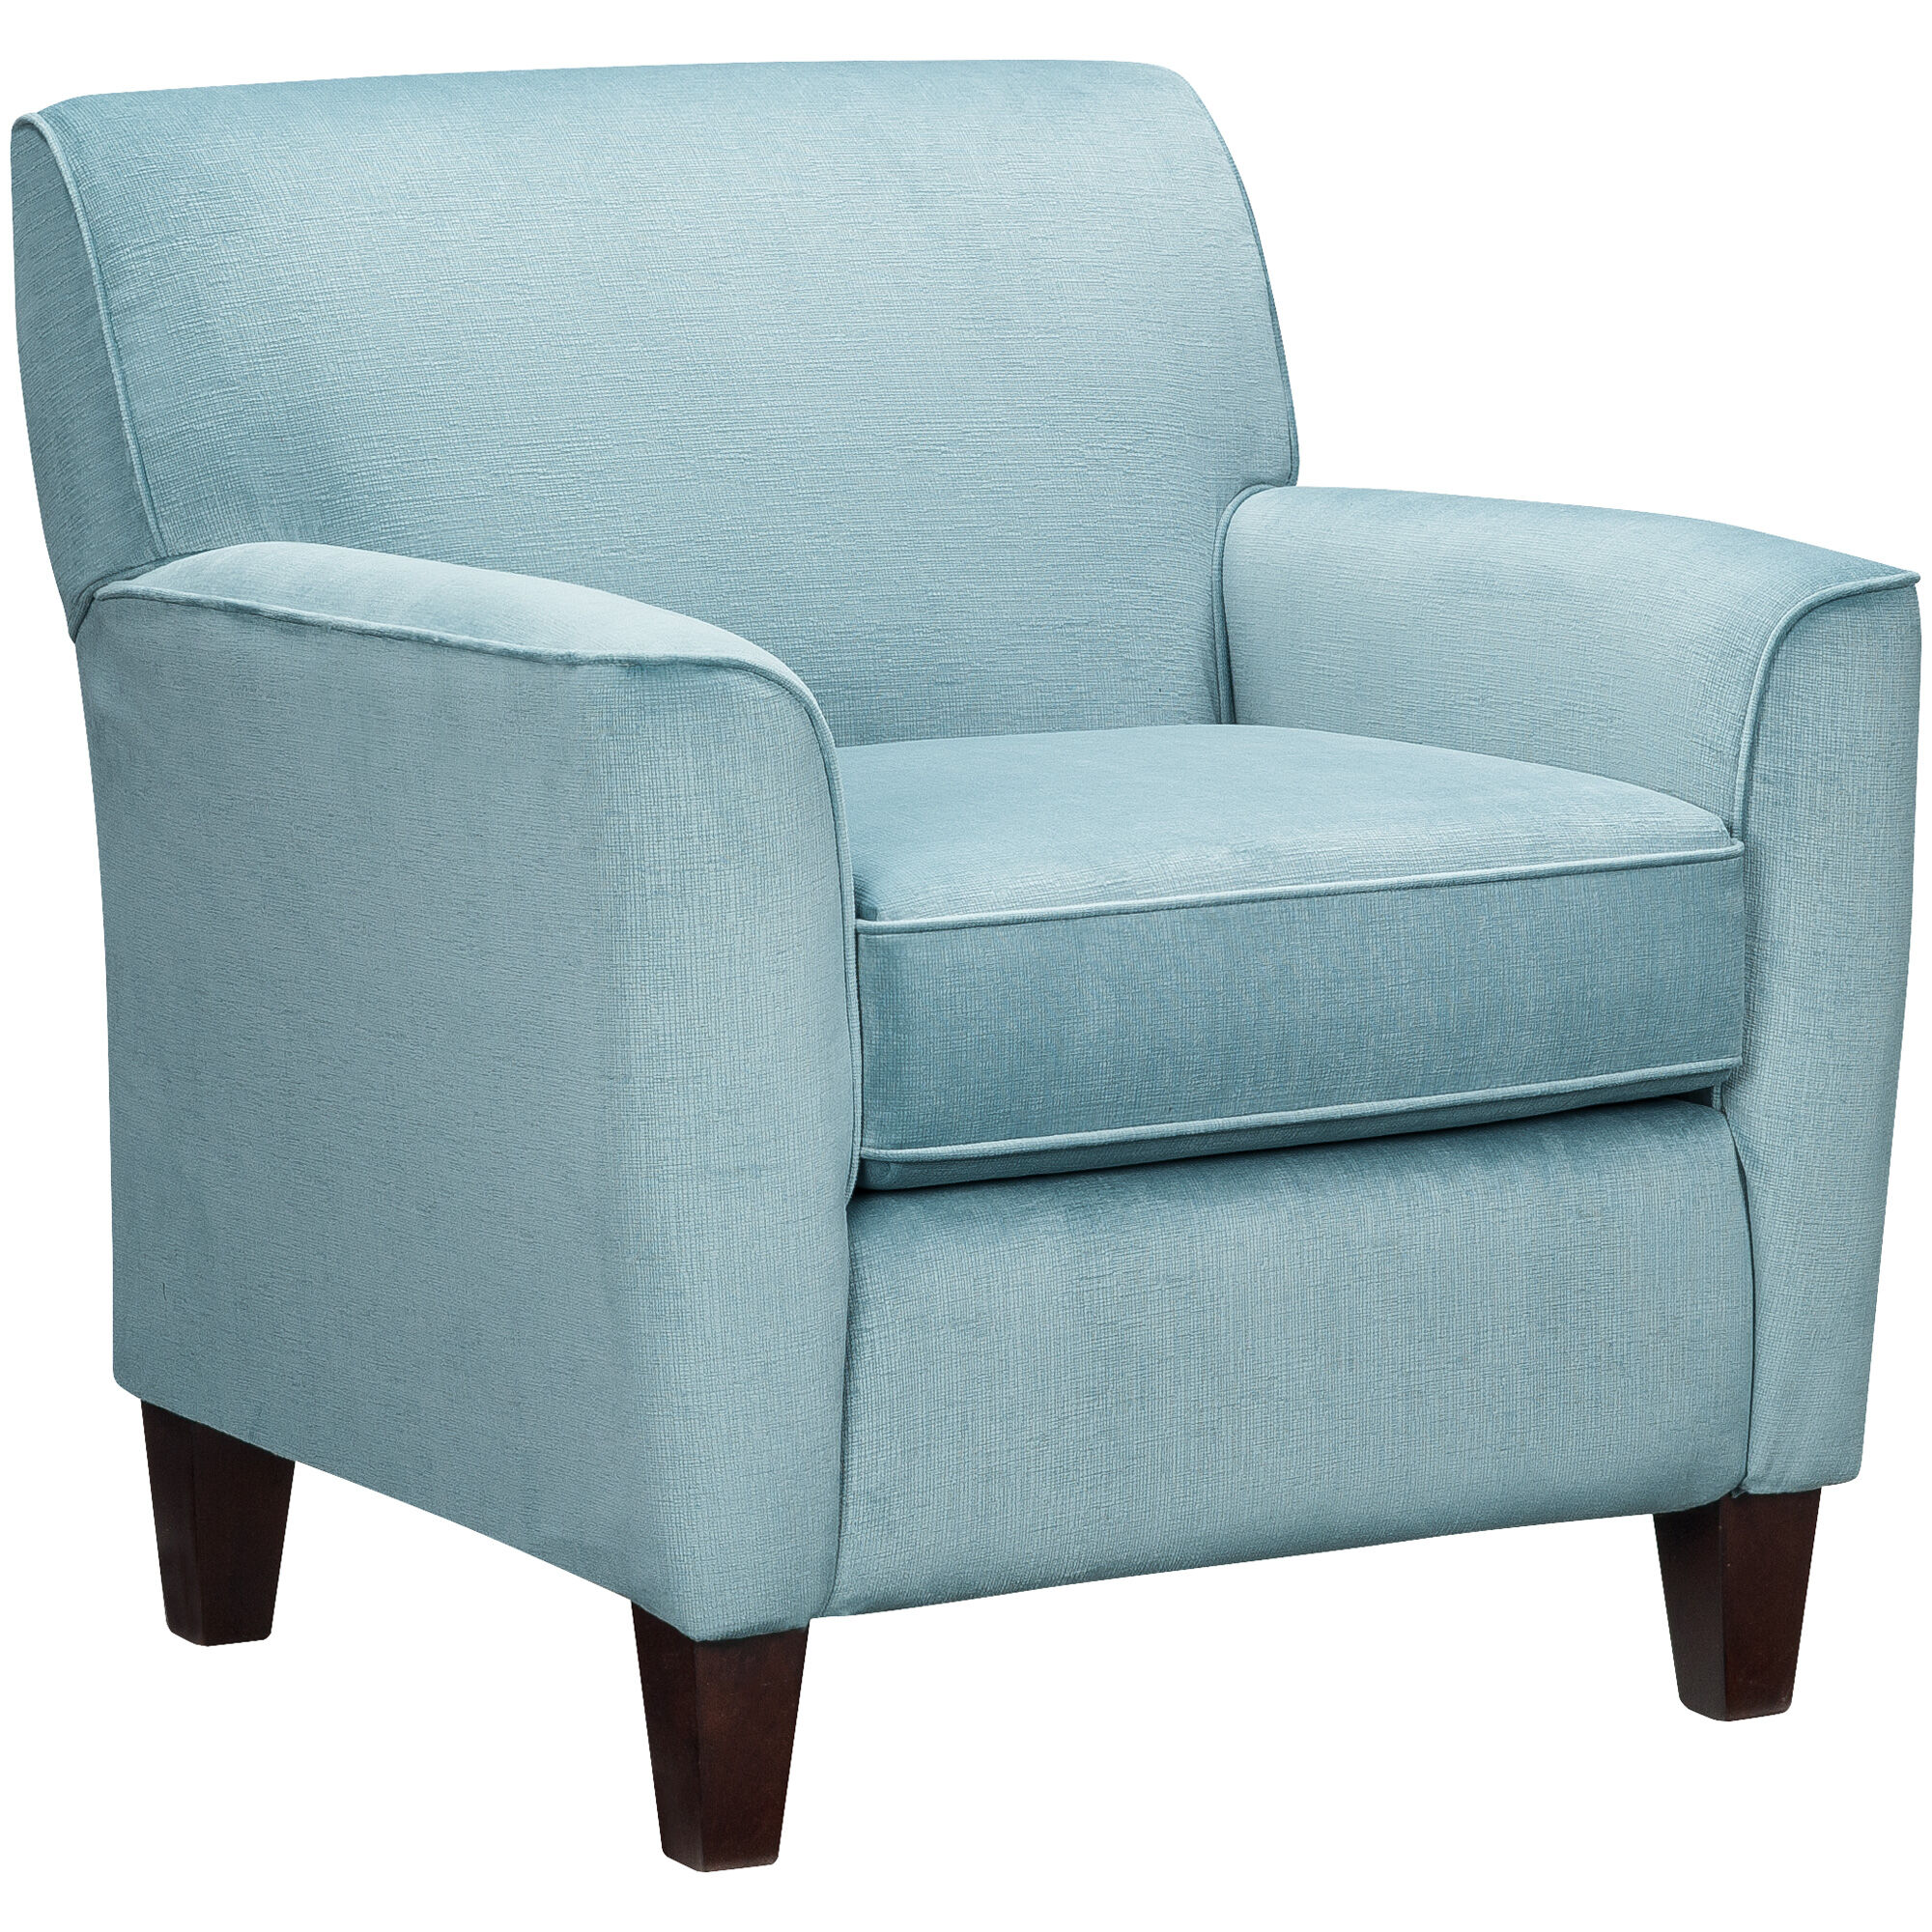 aqua accent chair wicker papasan slumberland furniture risa images previous